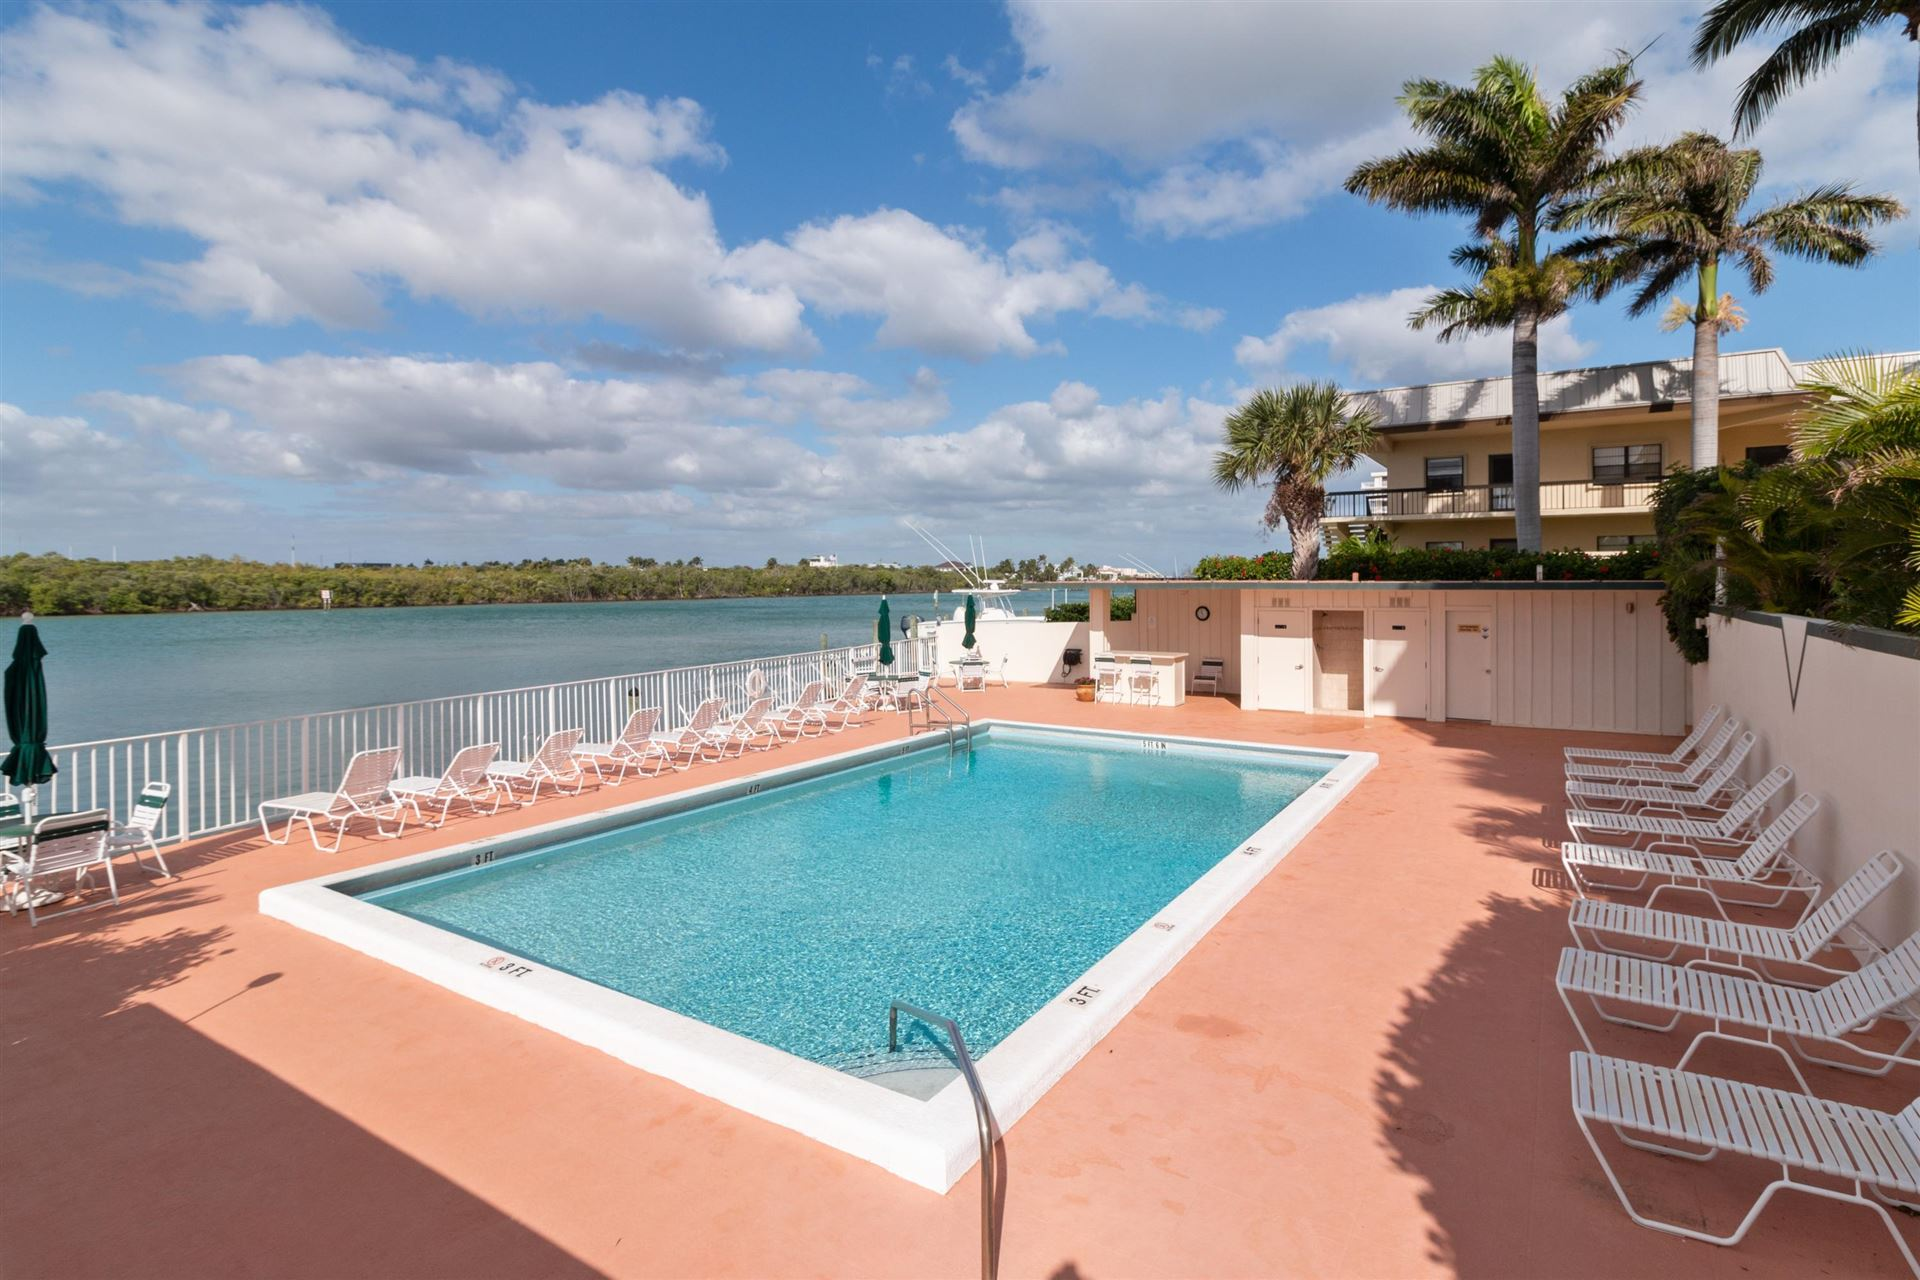 225 Beach Road #303, Tequesta, FL 33469 - #: RX-10591614